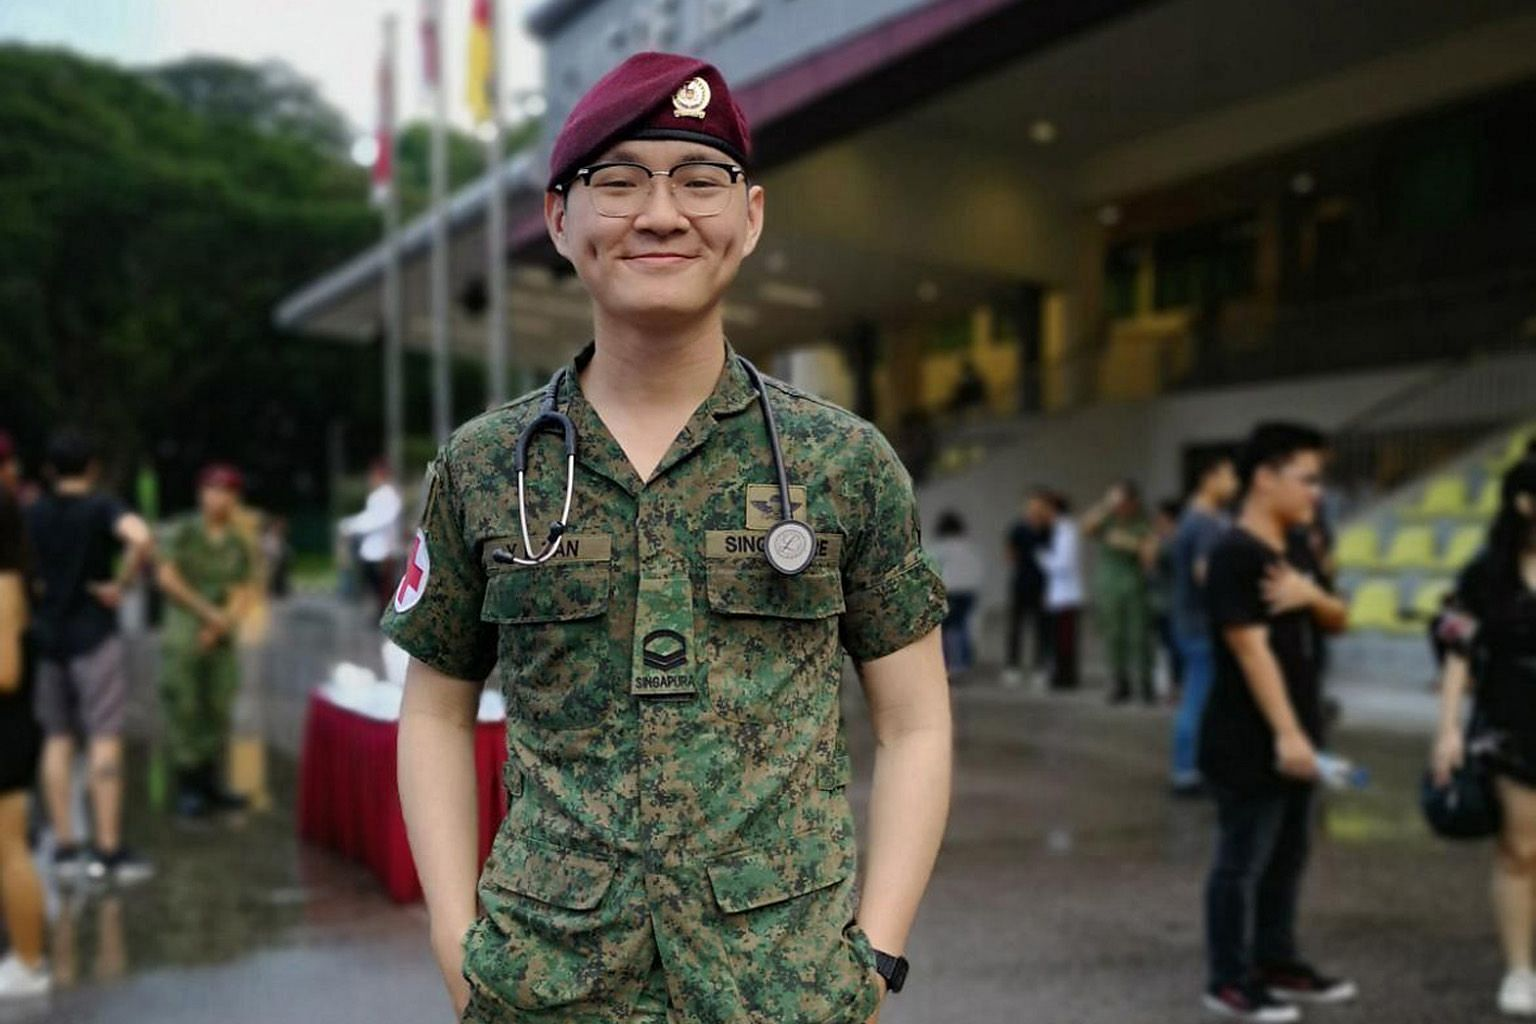 Mr Tan Ying Li, who went to Pioneer Junior College, was among the 280 selected to NUS' medical school.